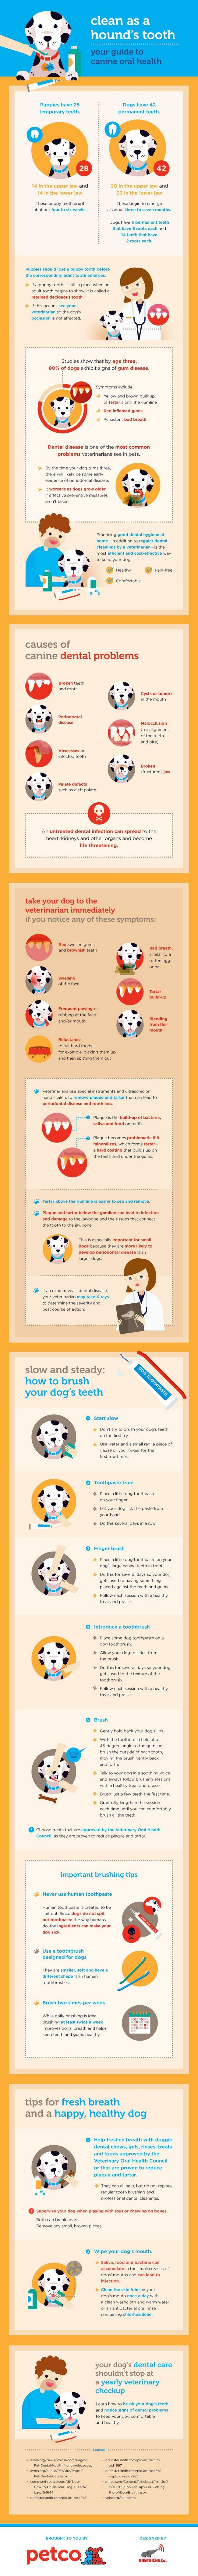 New infographic on canine oral health from petco!